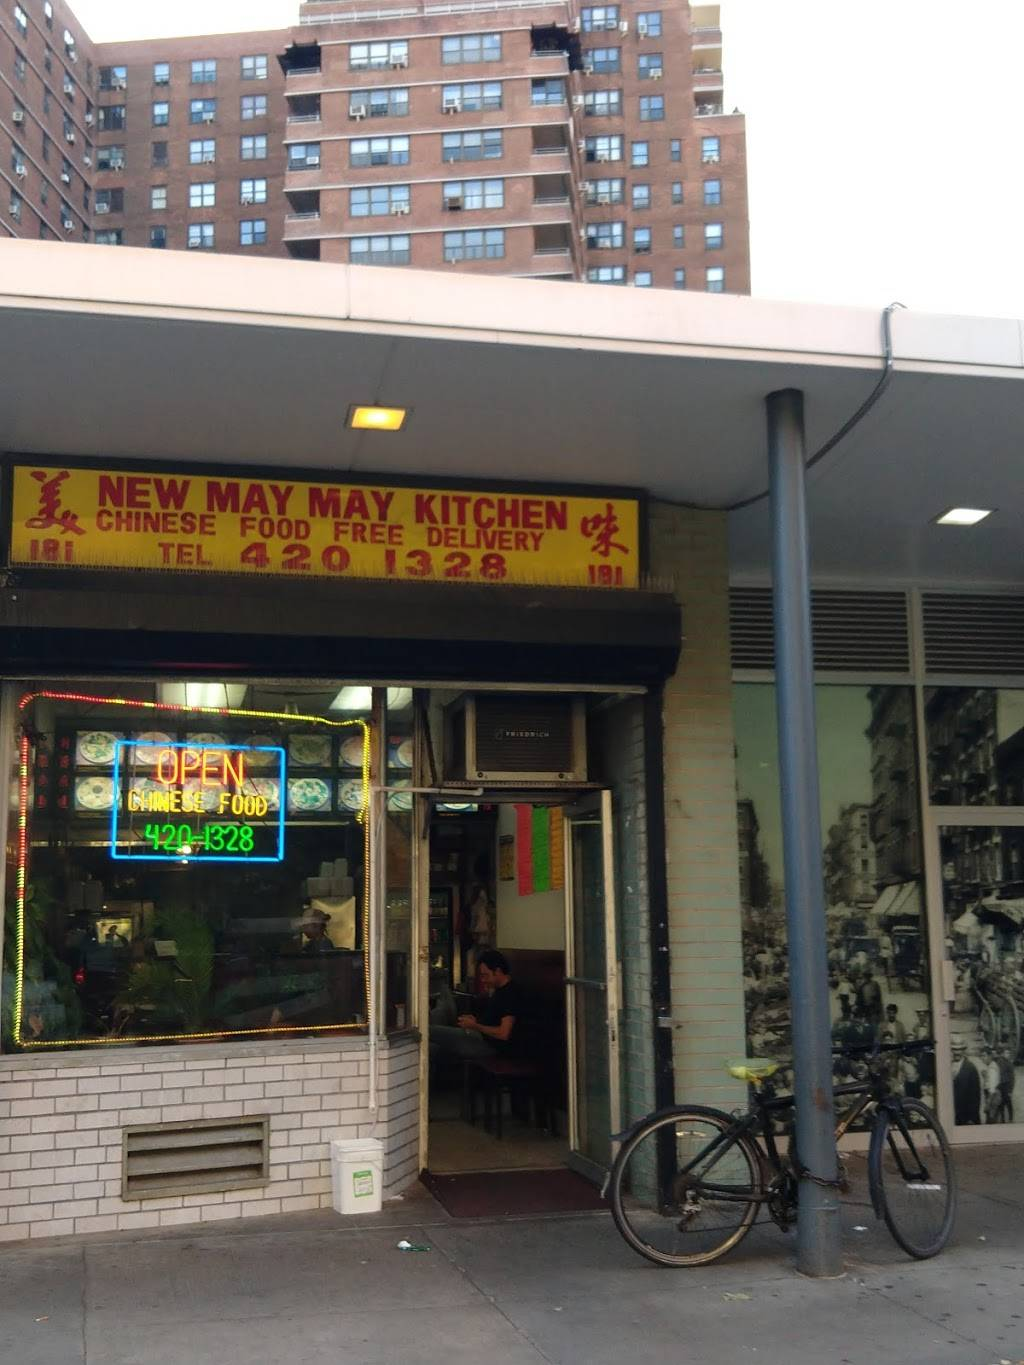 May May Kitchen | restaurant | 181 Clinton St, New York, NY 10002, USA | 2124201328 OR +1 212-420-1328